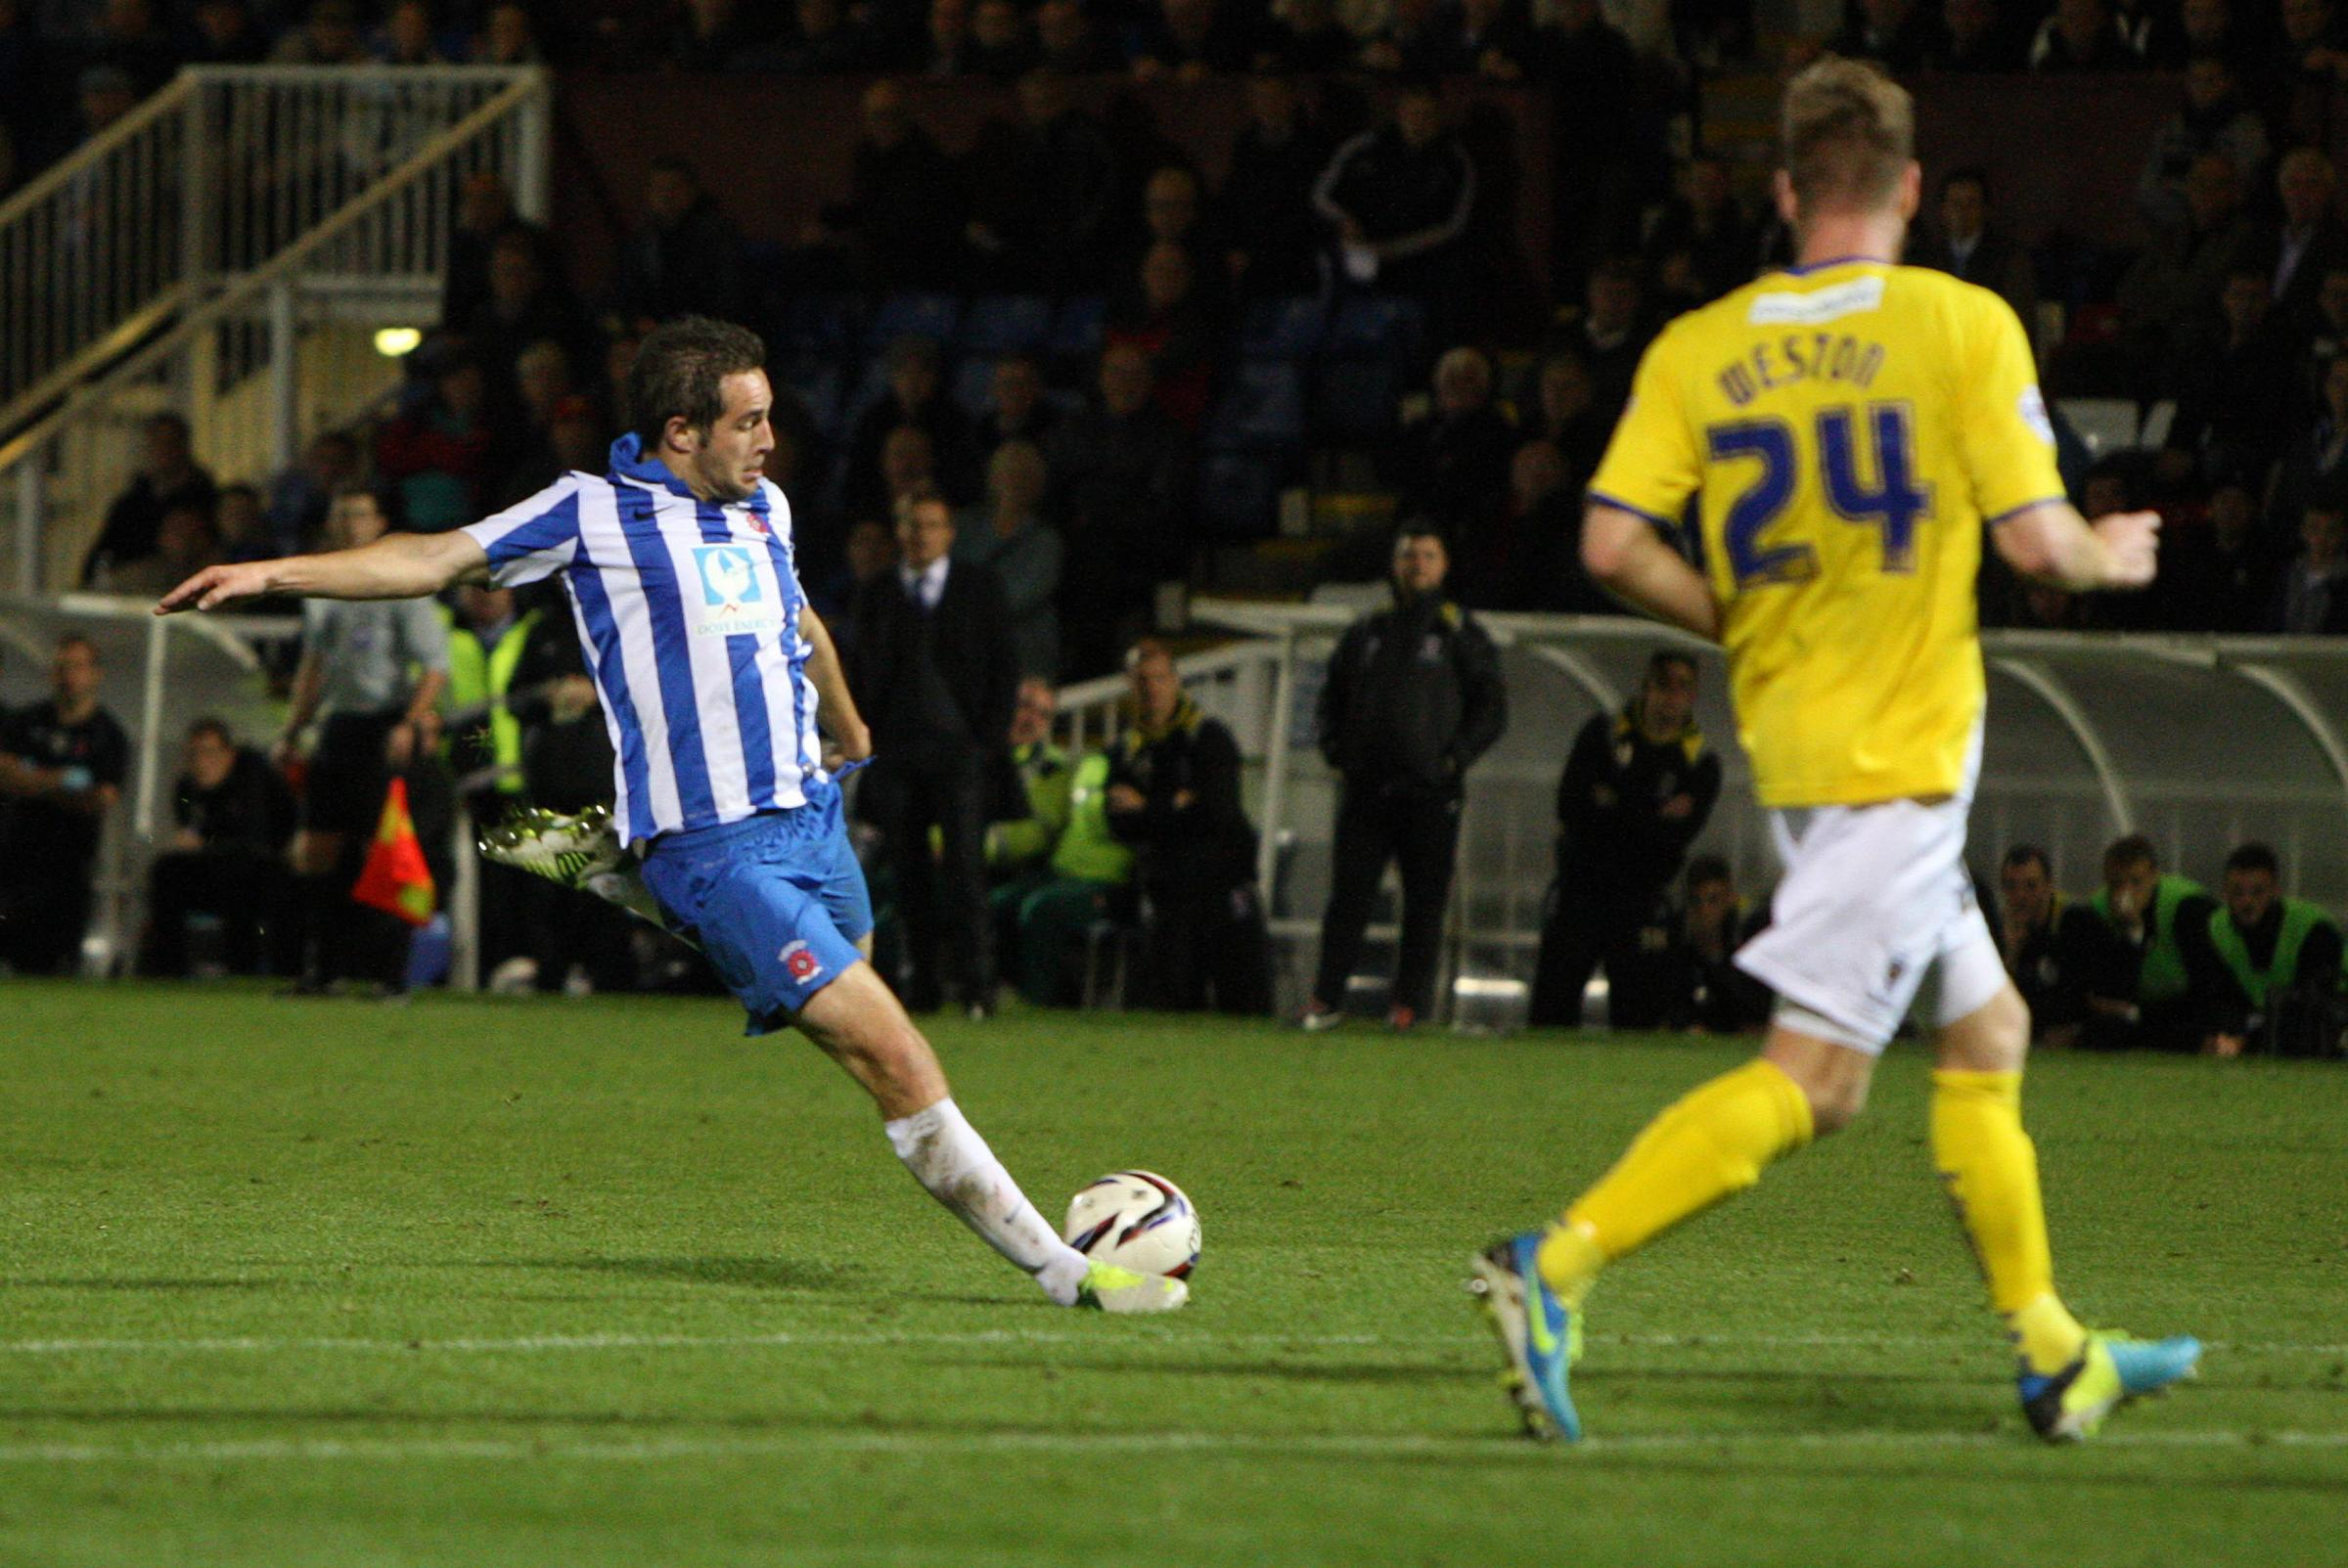 BACK TO BORO: Matty Dolan, pictured scoring against AFC Wimbledon, has returned to the Riverside after a loan spell at Victoria Park